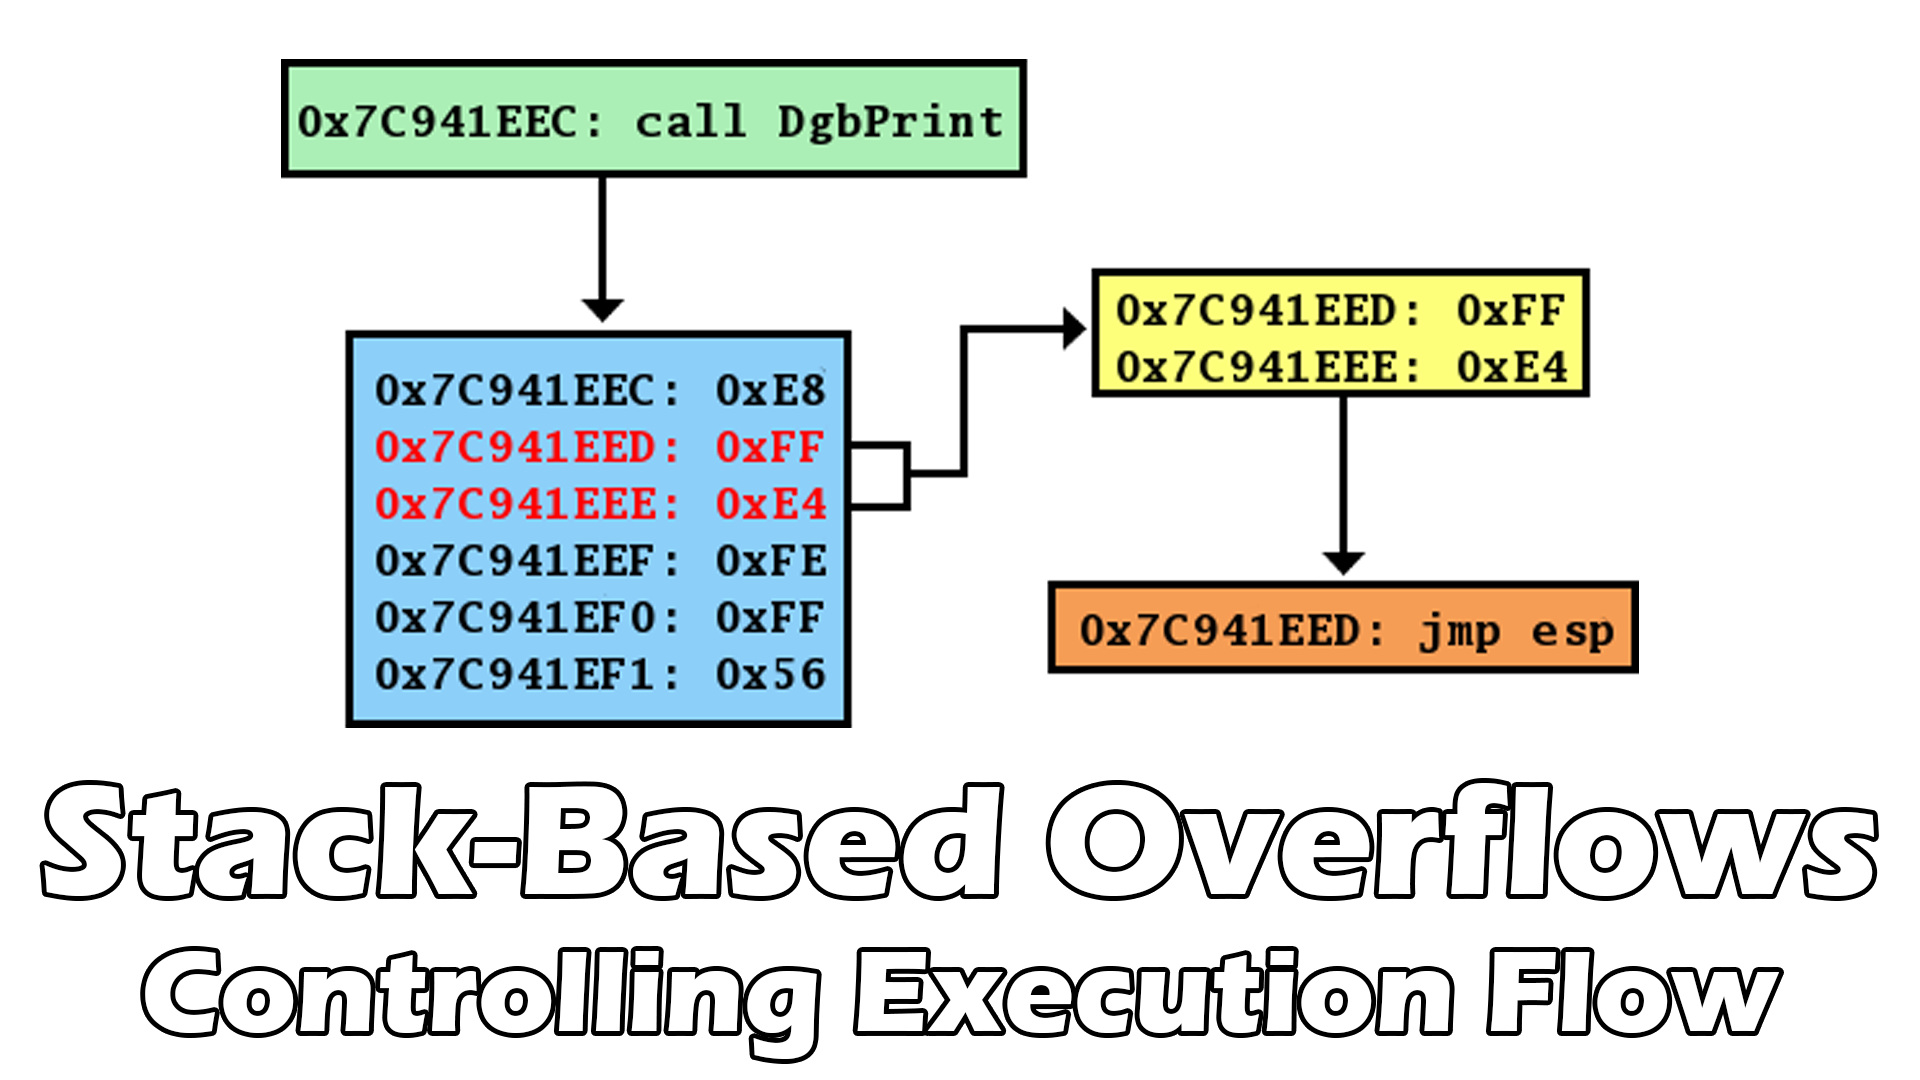 Stack-Based Overflows – Controlling Execution Flow